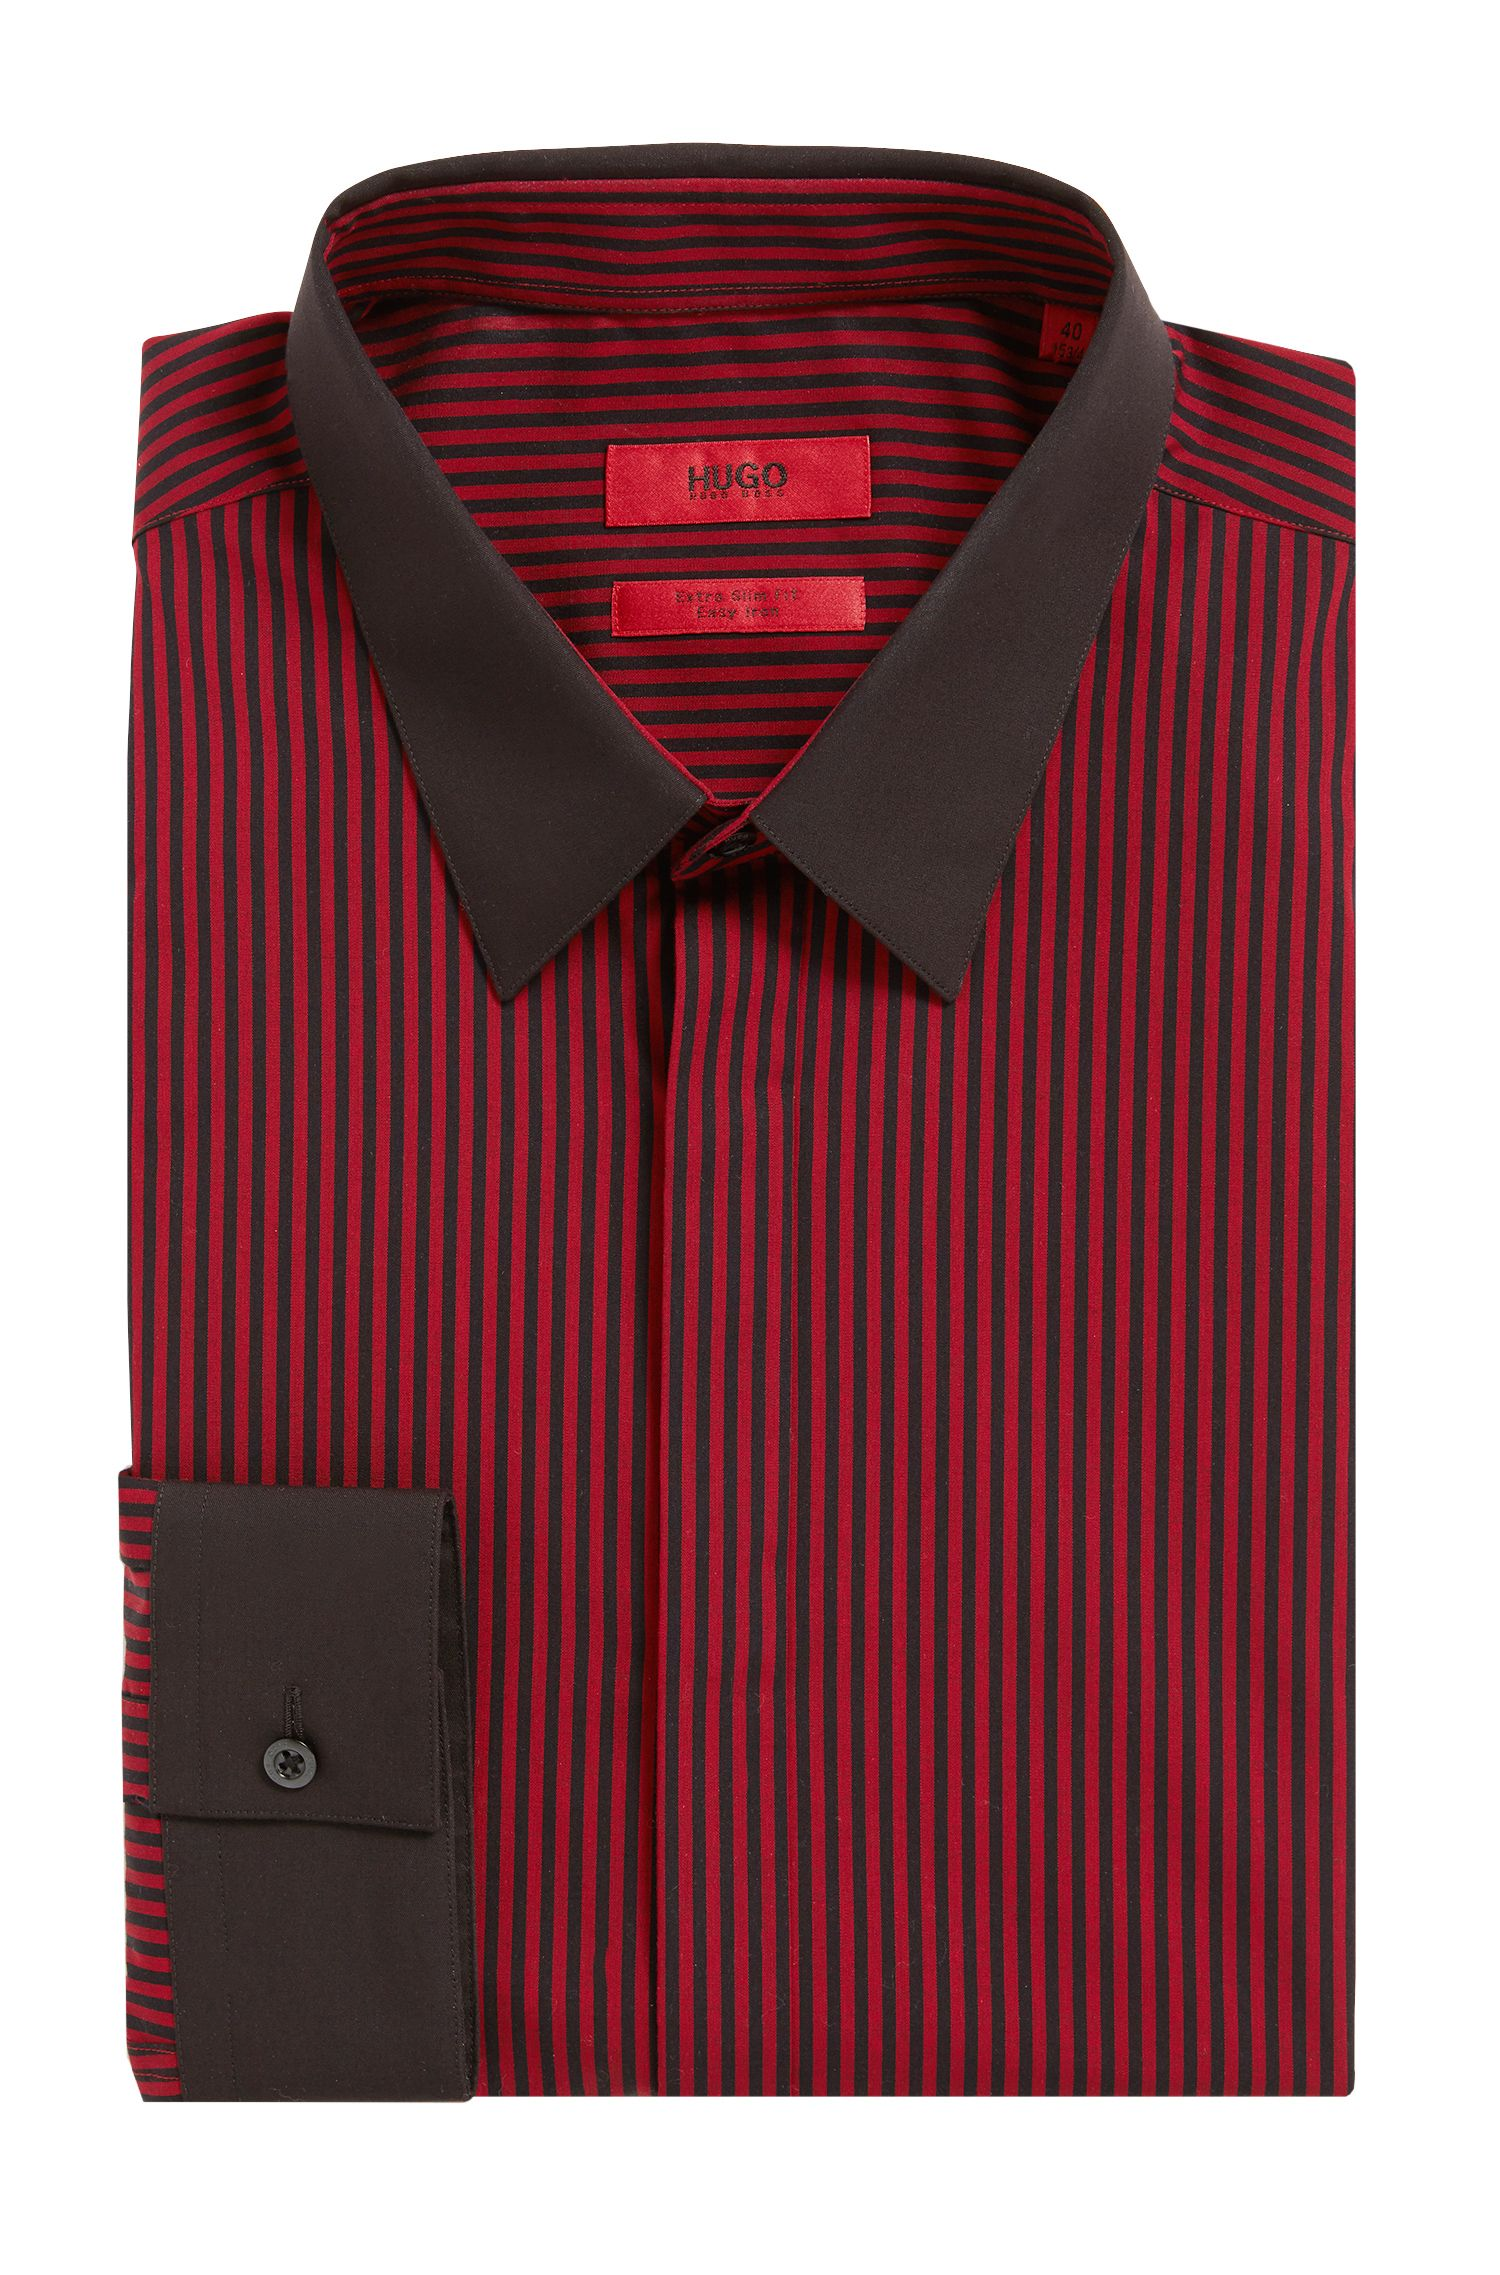 'Elynon' | Extra-Slim Fit, Striped Easy Iron Cotton Dress Shirt